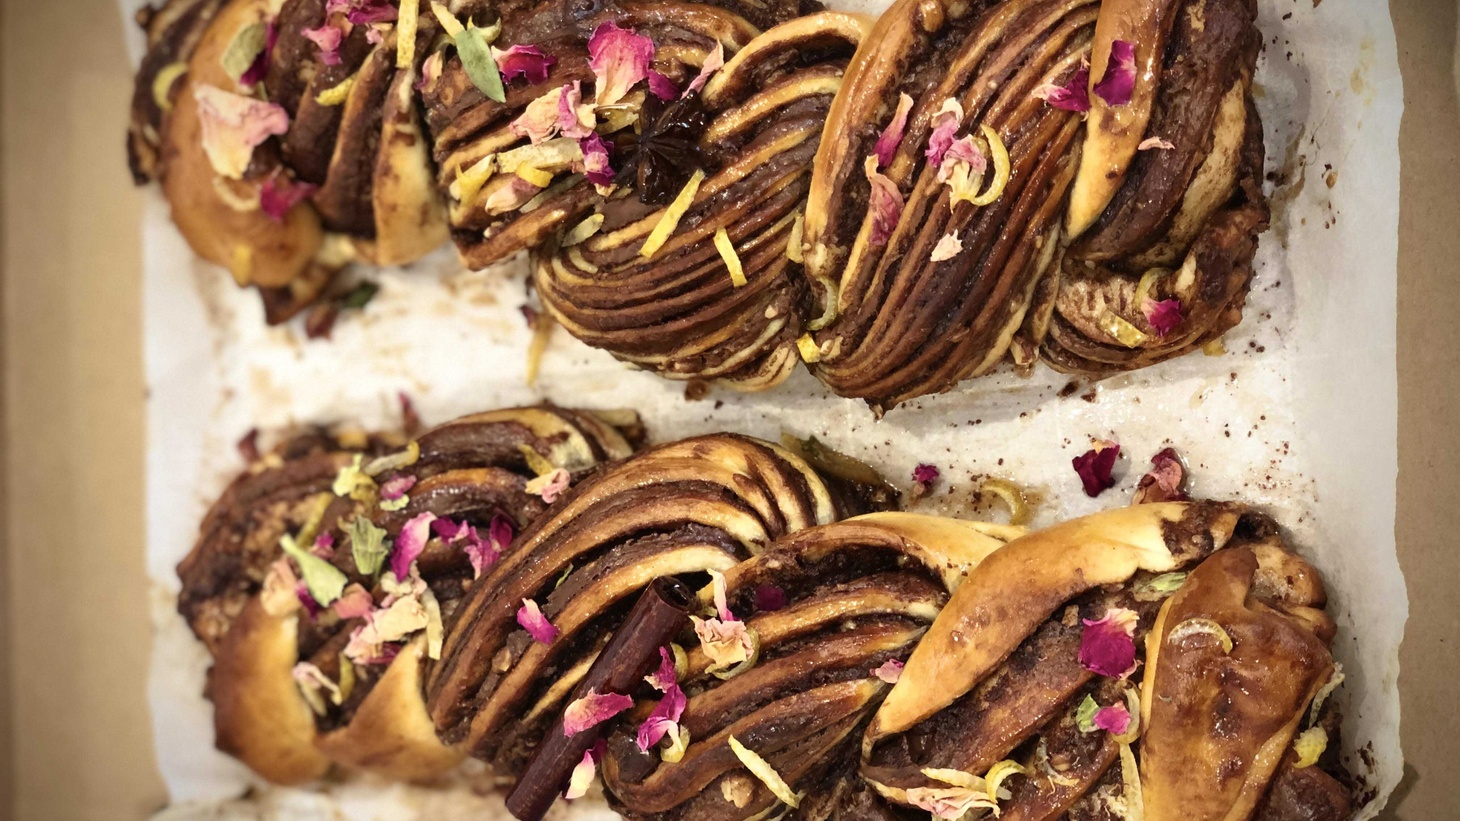 With tahini, cream, and roasted pecan, Shimi Aaron experiments with different flavors in his babka.